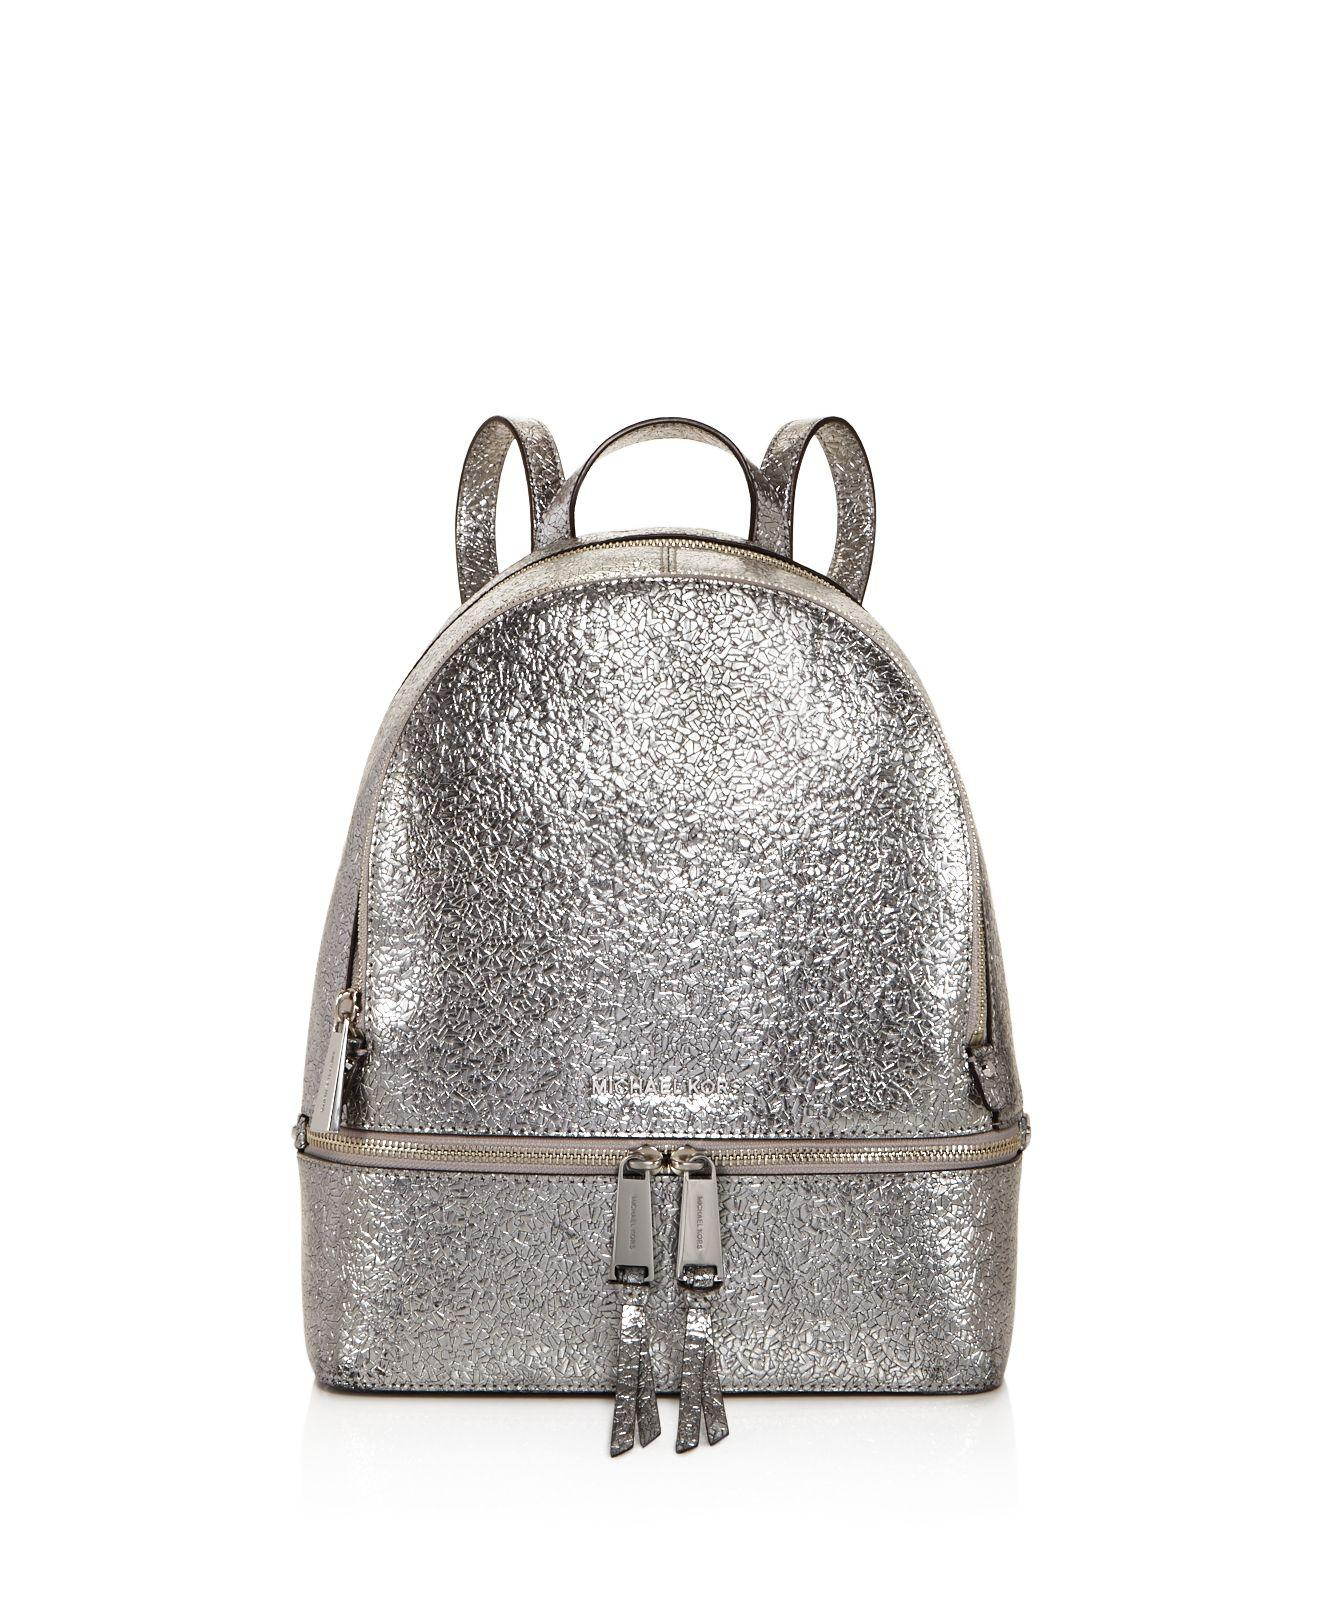 0515bff03c82 MICHAEL Michael Kors Rhea Zip Metallic Medium Leather Backpack in ...